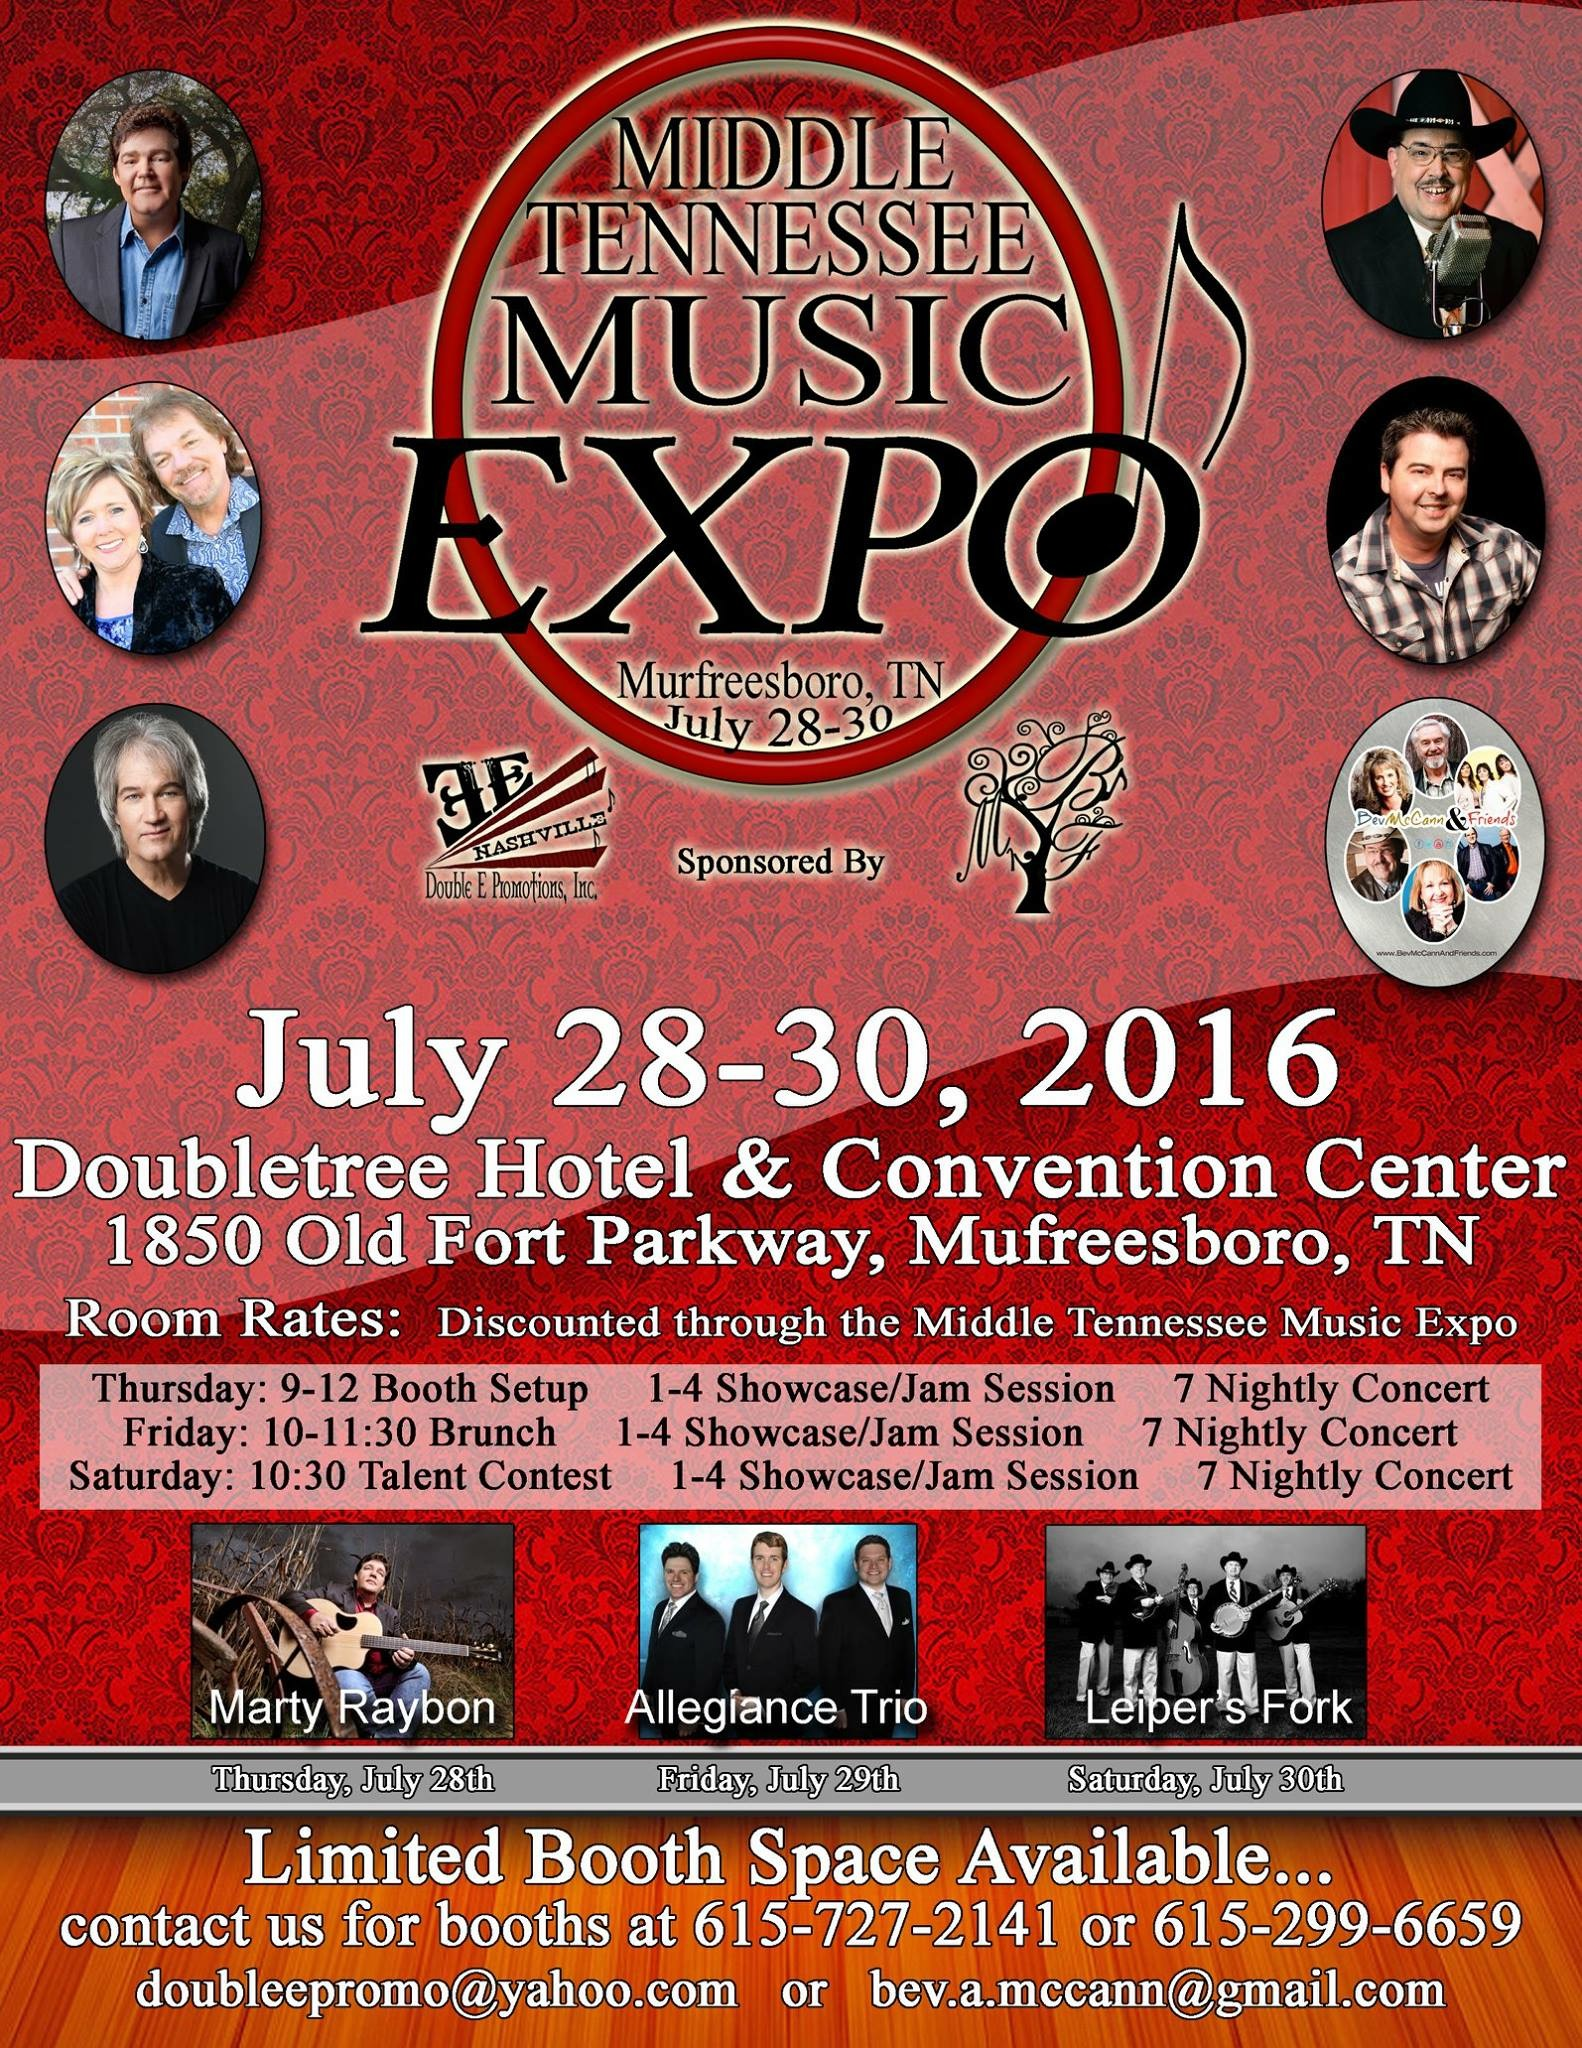 Middle Tennessee Music Expo